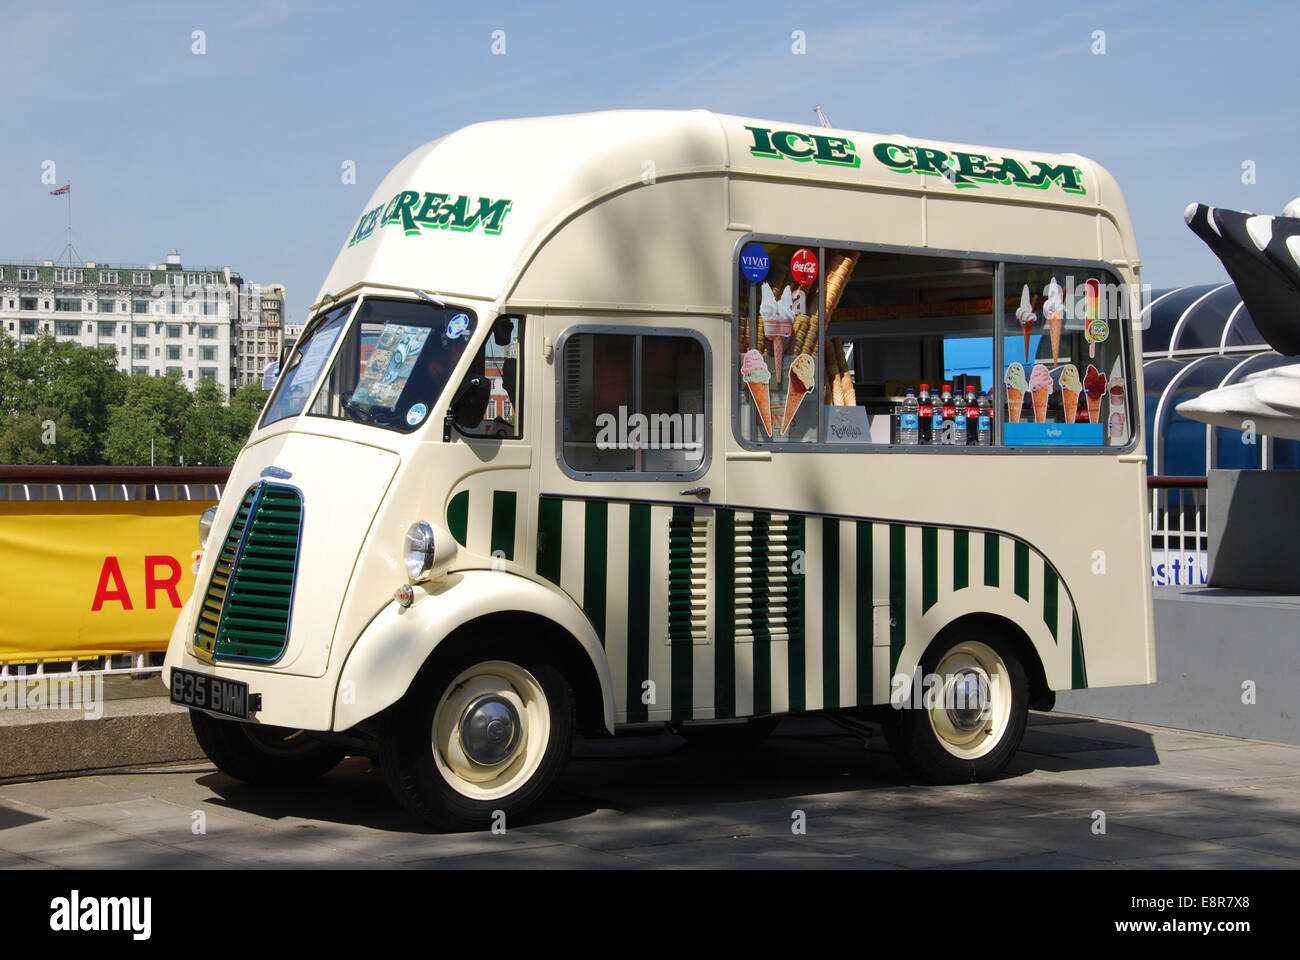 1954 Morris J-type ice cream van at London's South Bank United Kingdom - Stock Image